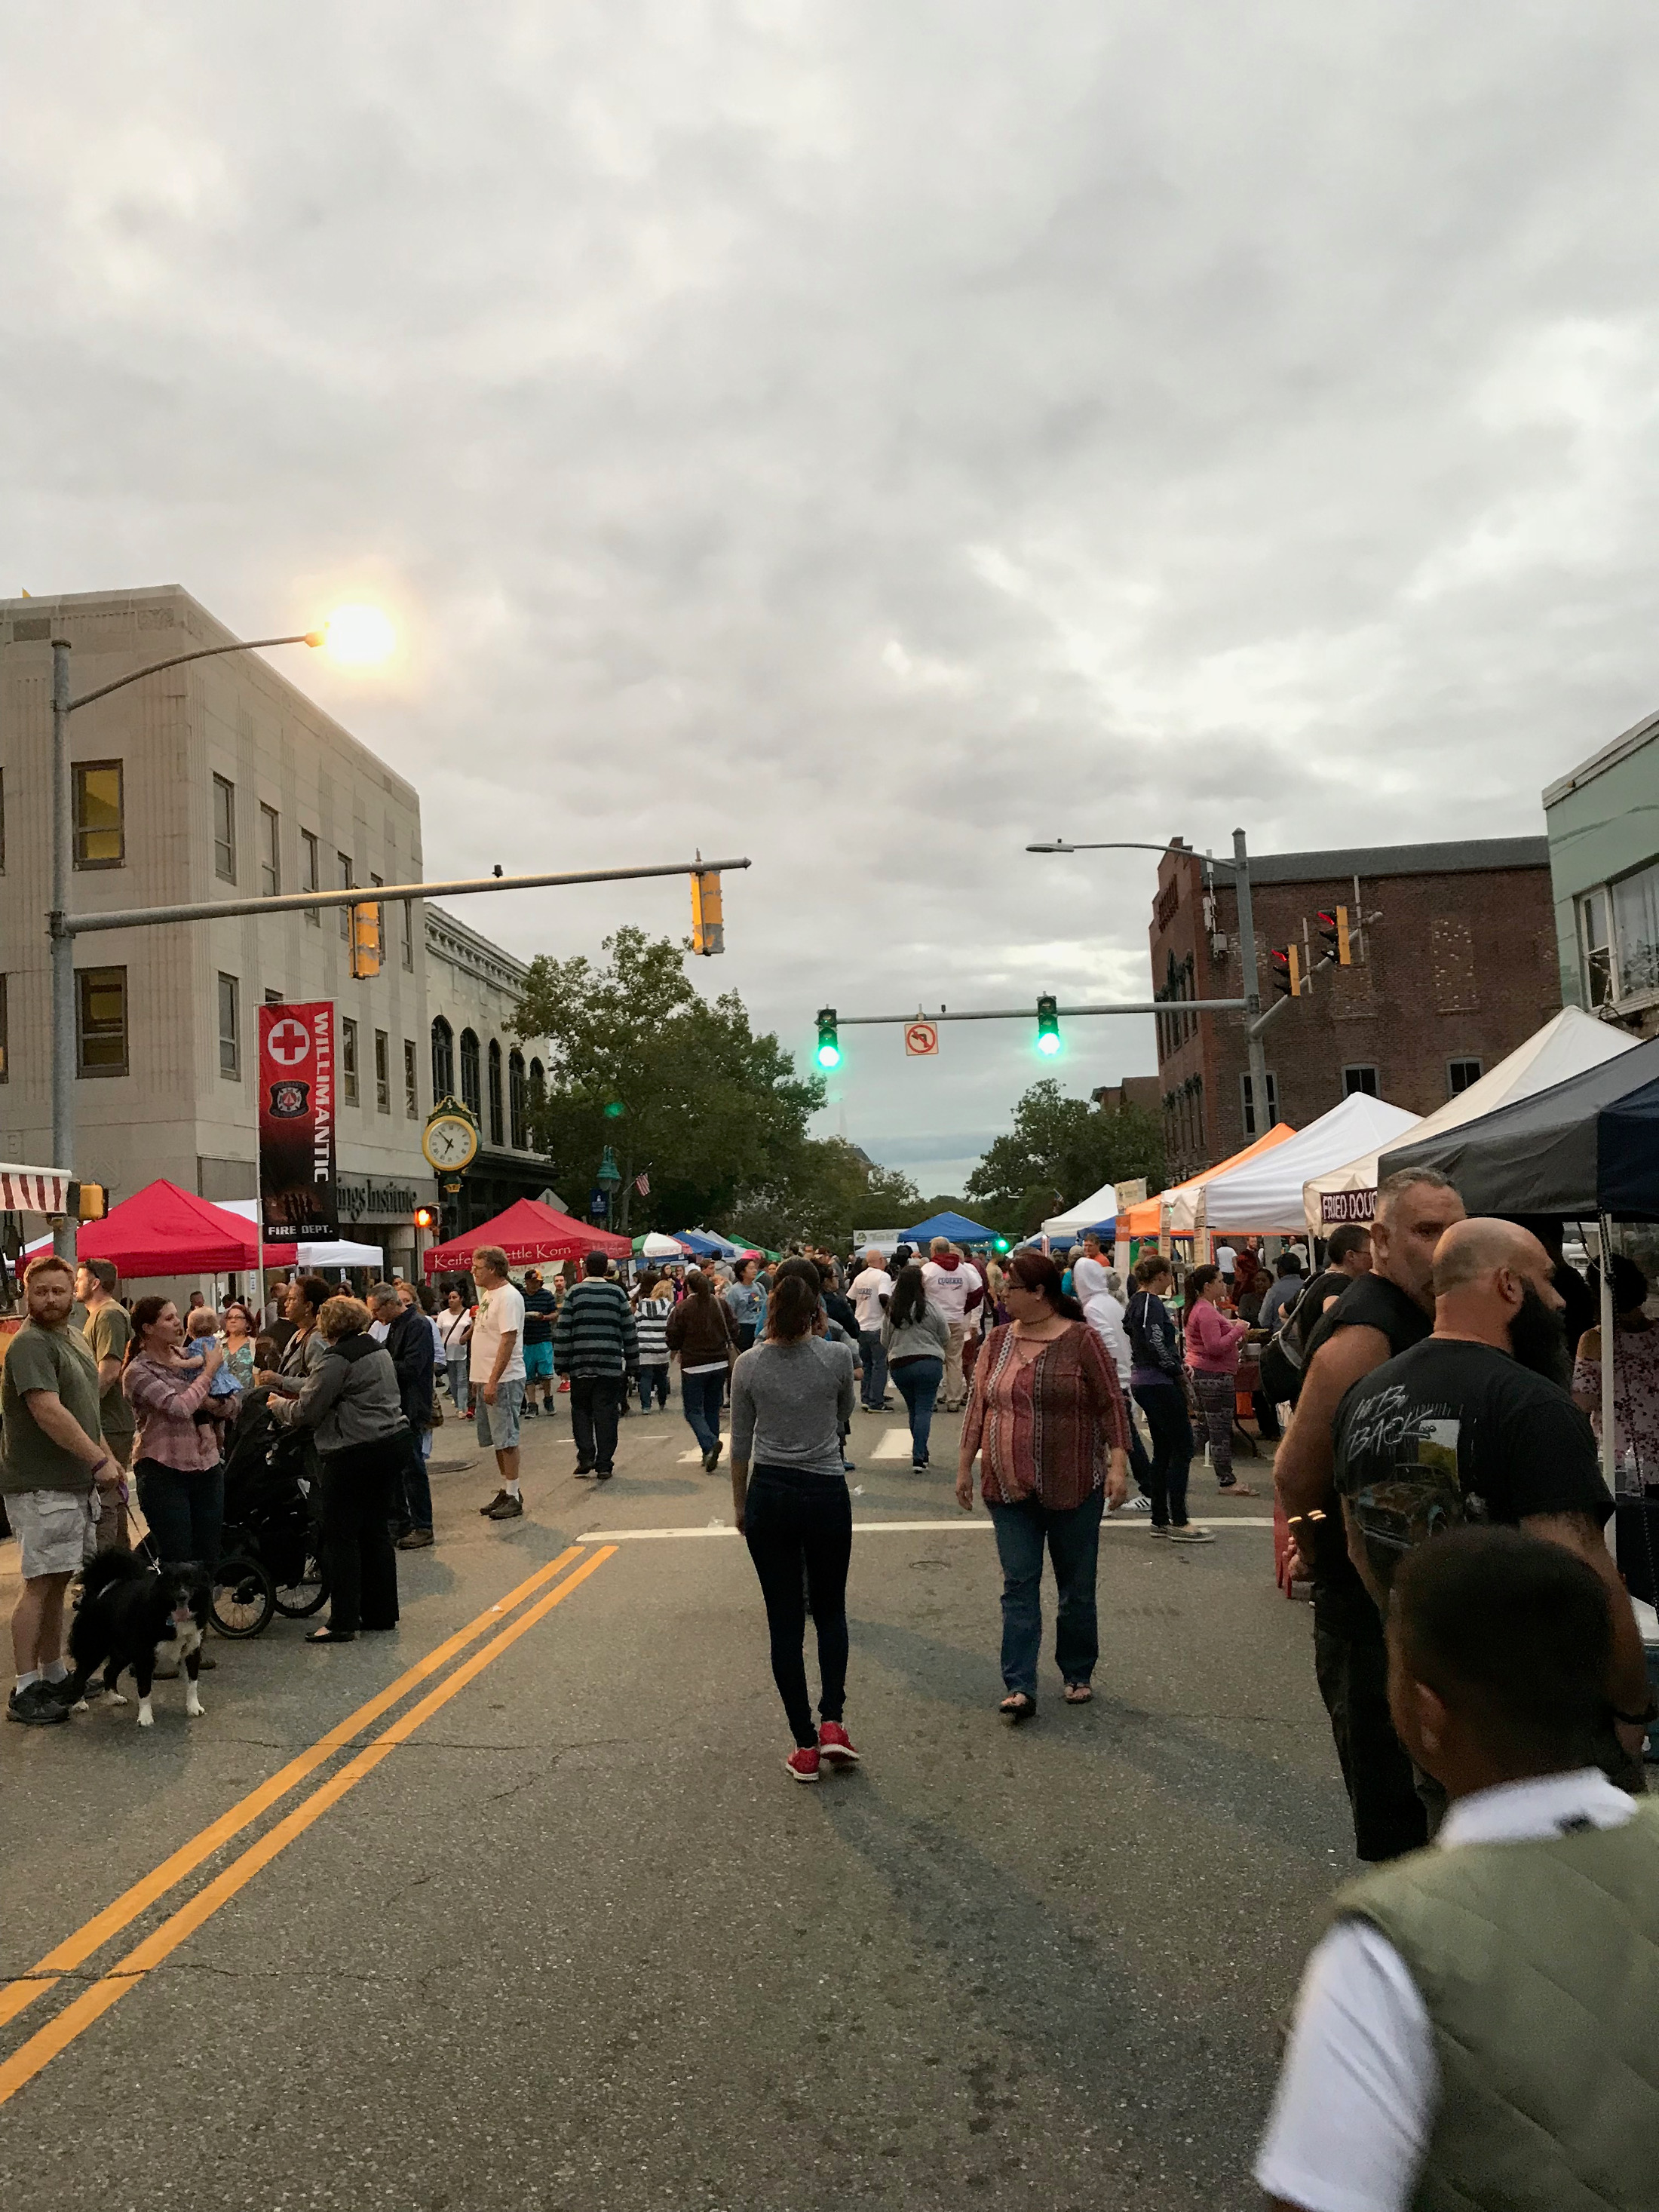 The diverse crowd flowed in and out of the countless stalls, comprised of UConn and ECSU students, local residents, dogs - you name it. (Daniel Cohn/The Daily Campus)